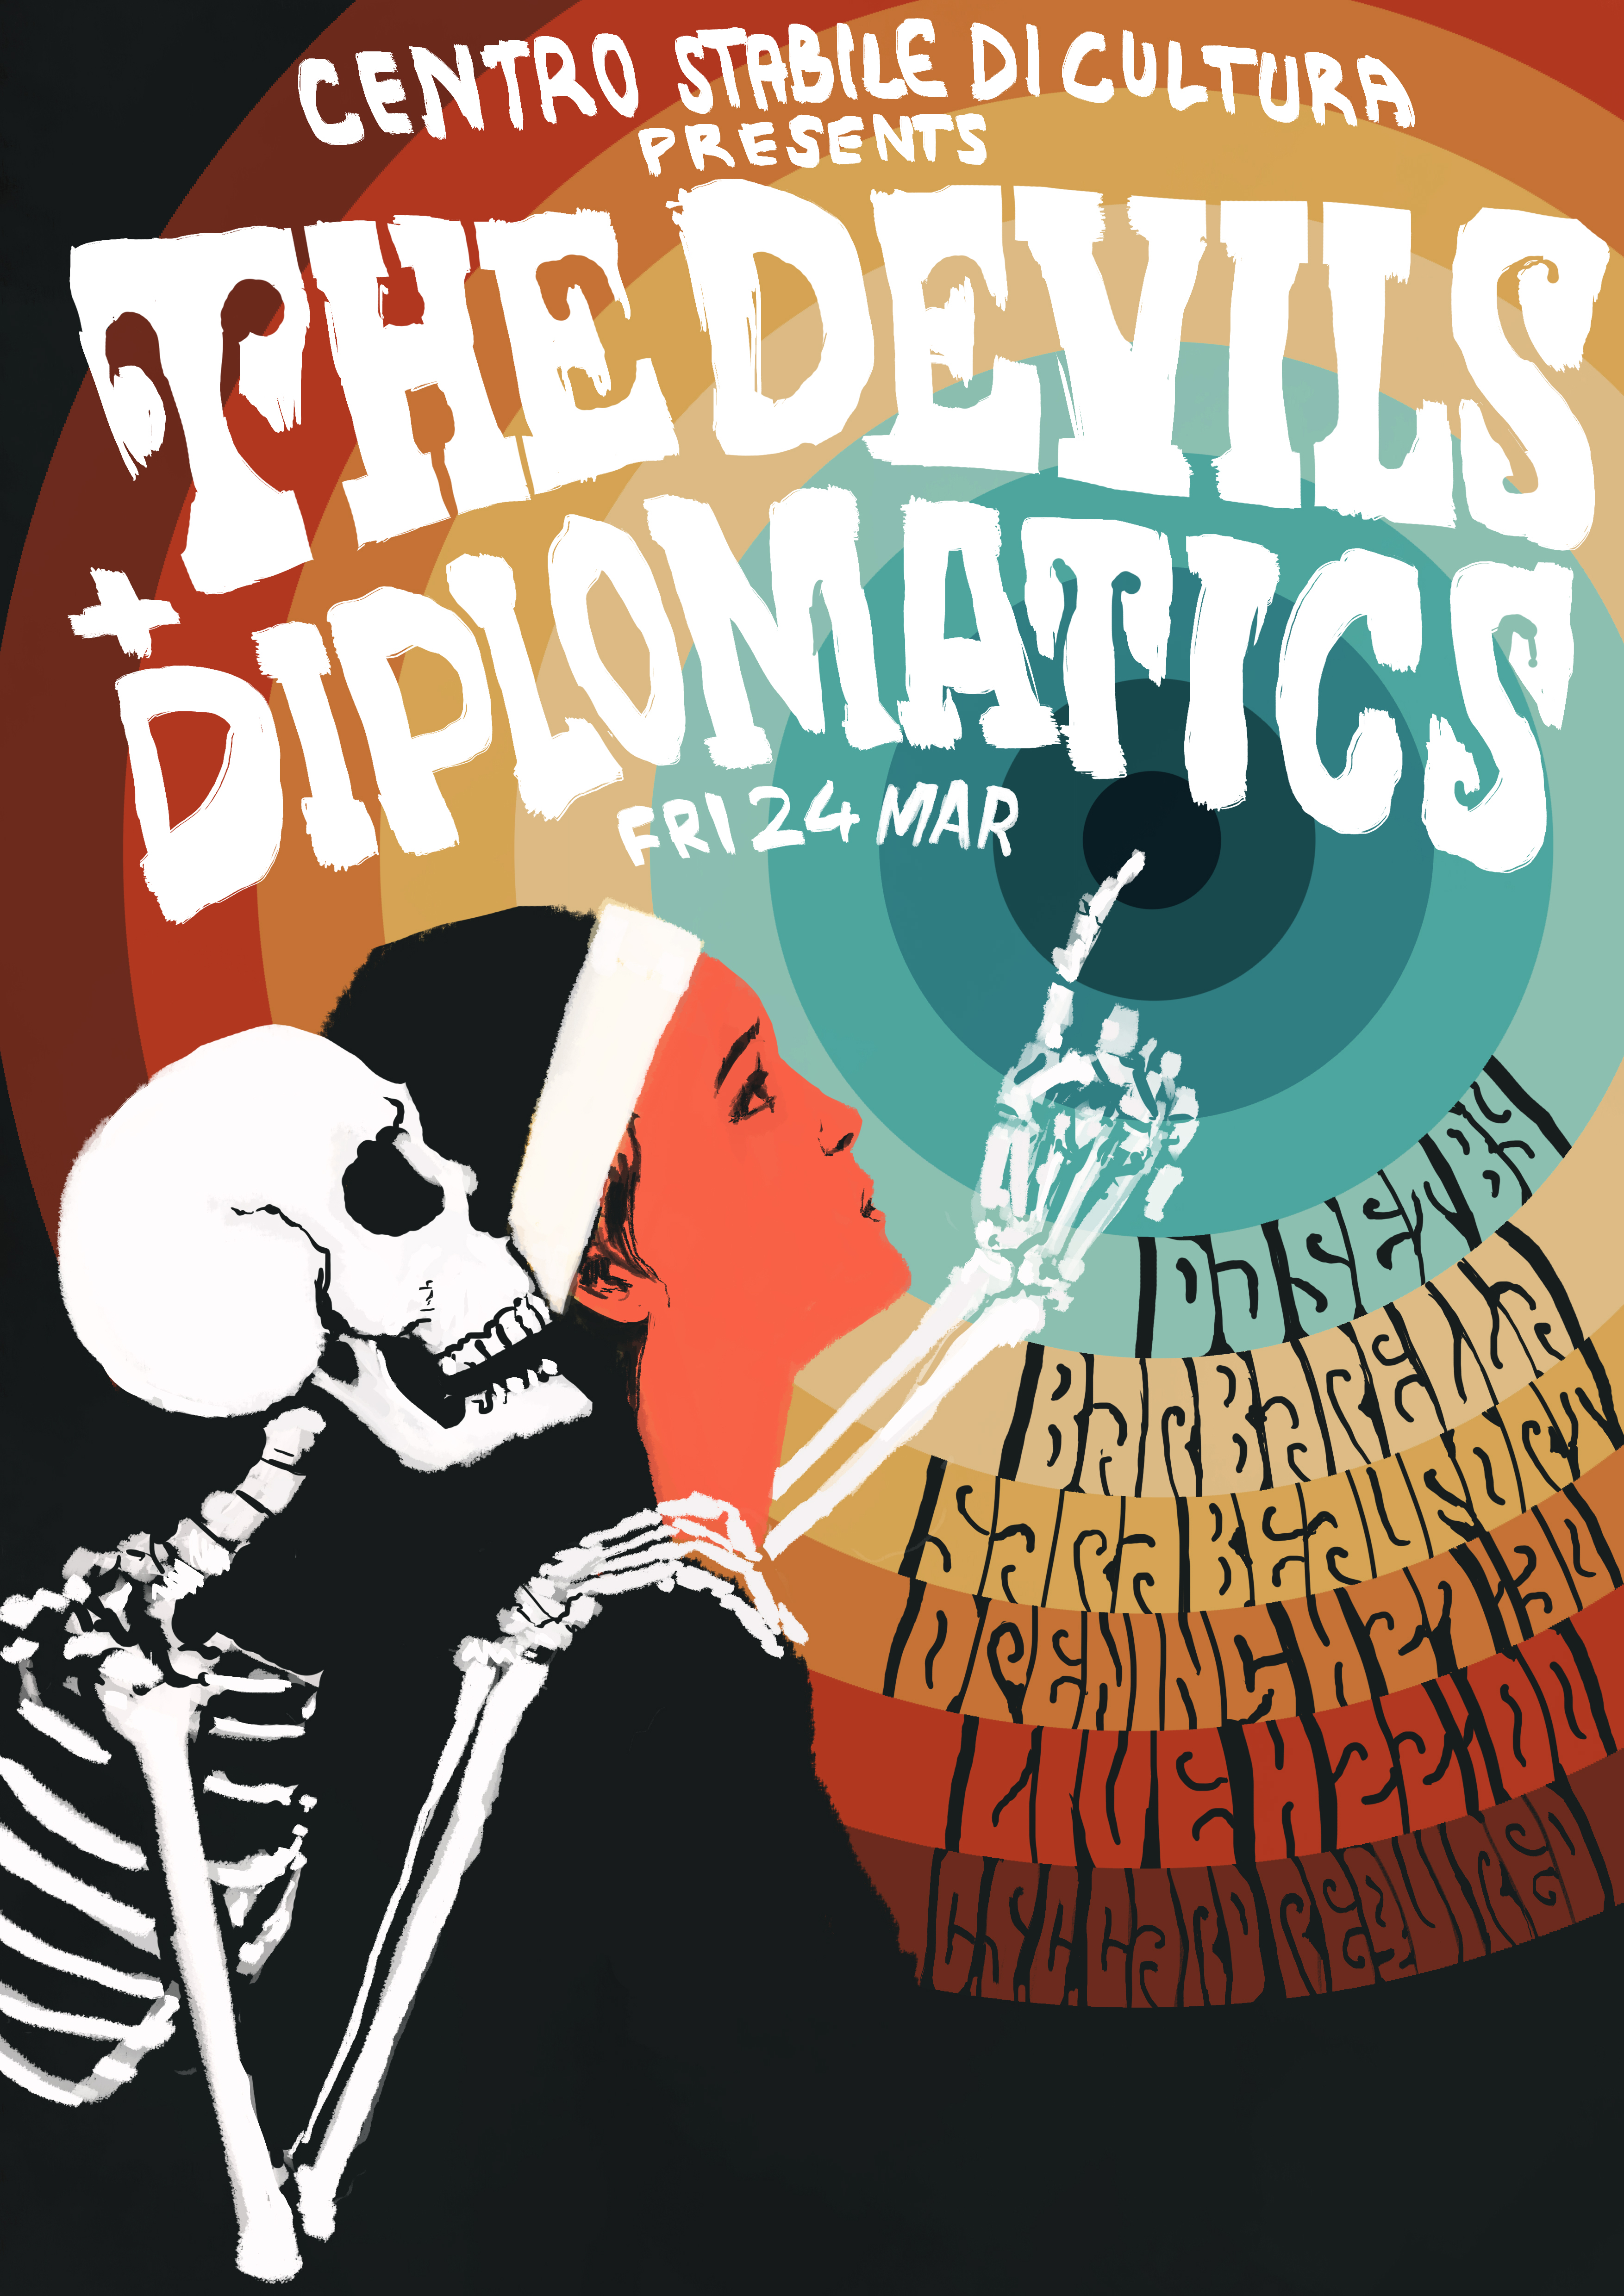 The Devils + Diplomatics